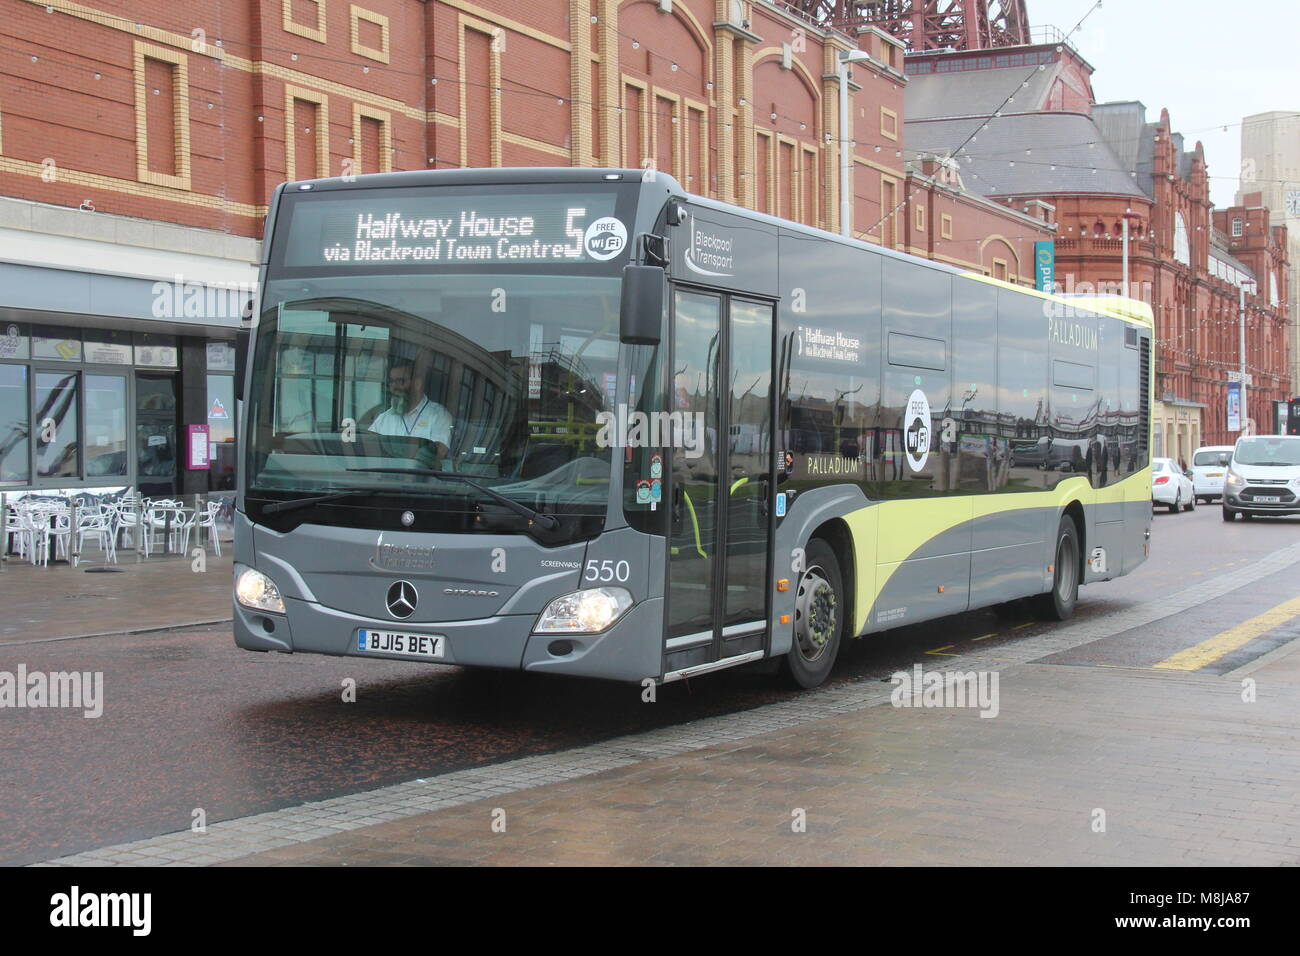 A NEARSIDE FRONT VIEW OF A MECEDES-BENZ CITARO BUS OF VLACKPOOL TRANSPORT - Stock Image